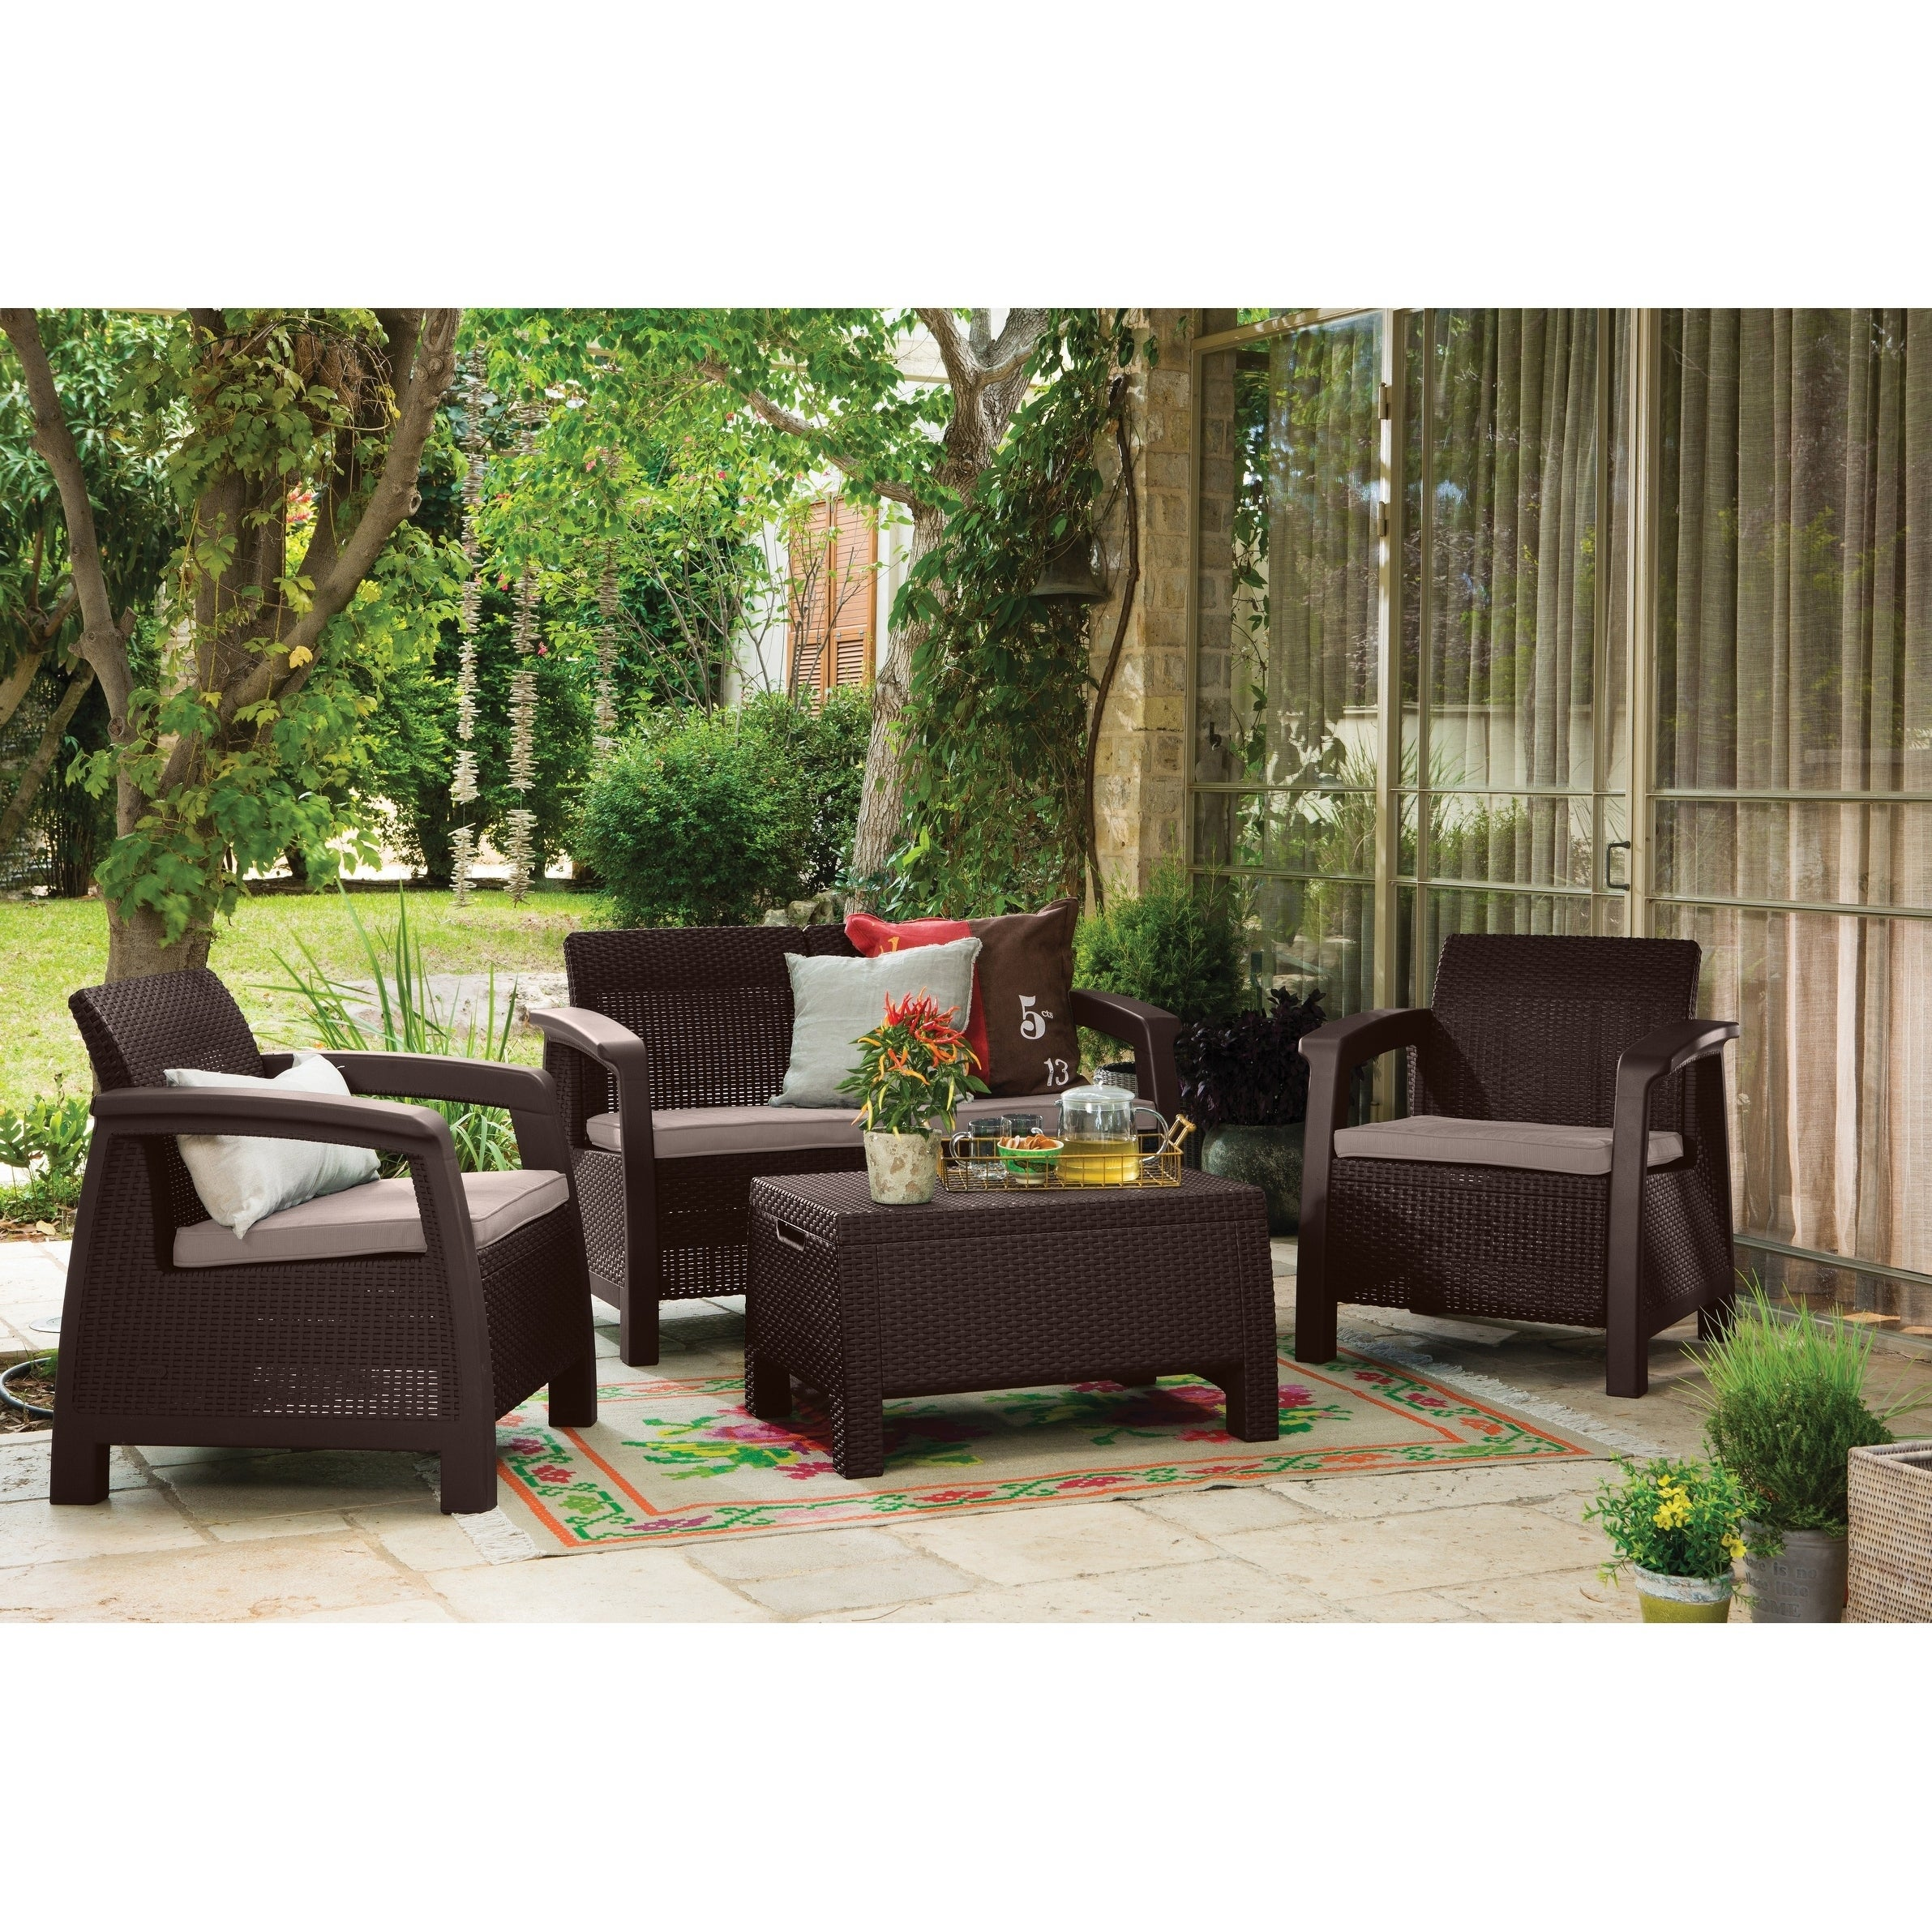 +134 Outdoor Patio Furniture Sets With Fire Pit | Outdoorhom